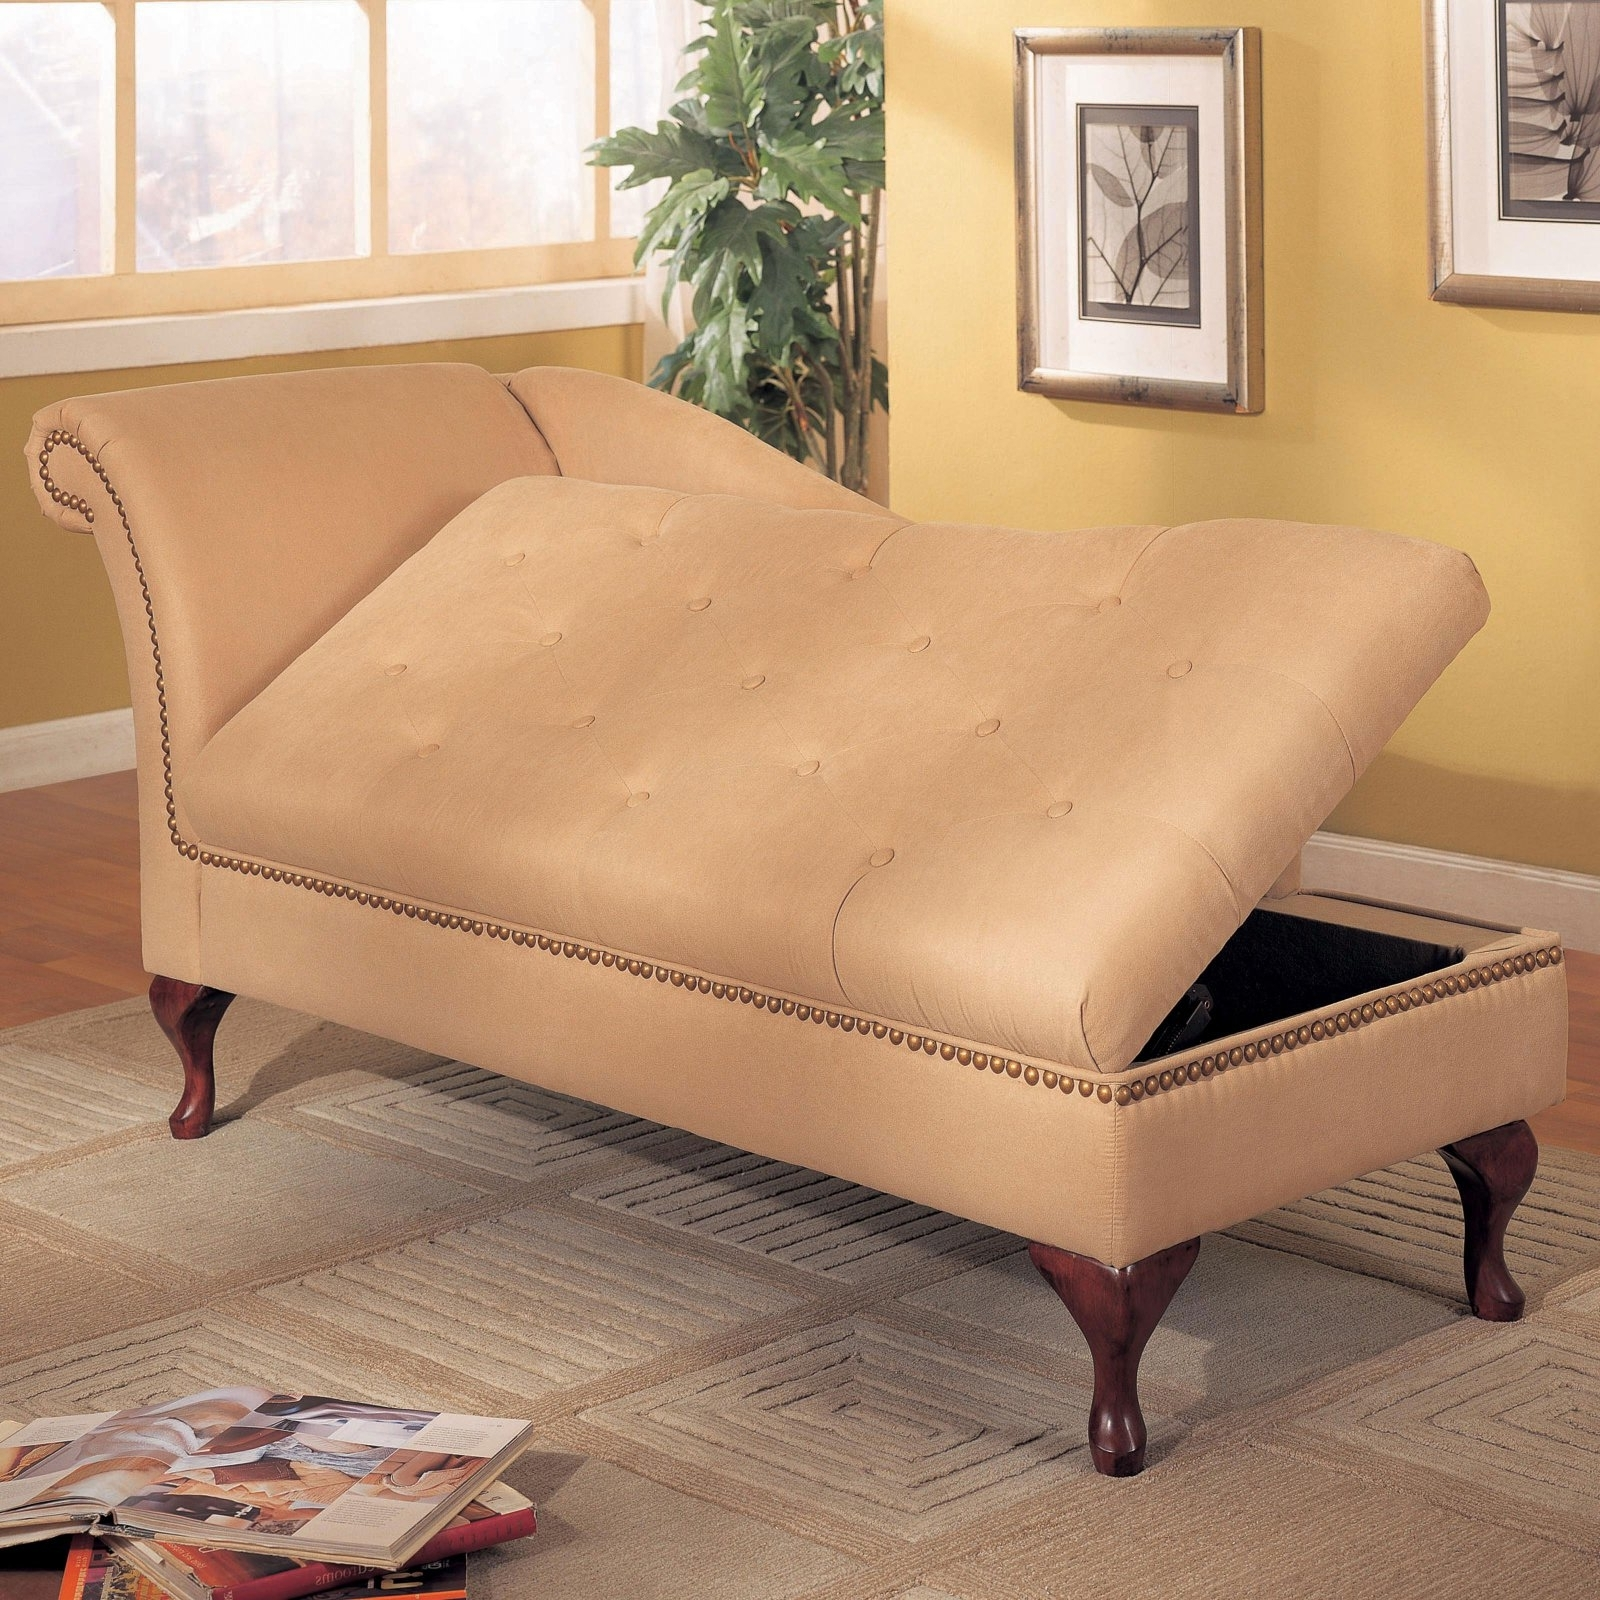 Indoor Chaise › Indoor Chaise Lounge With Storage Chaise Lounges Pertaining To Most Current Beige Chaise Lounges (View 10 of 15)